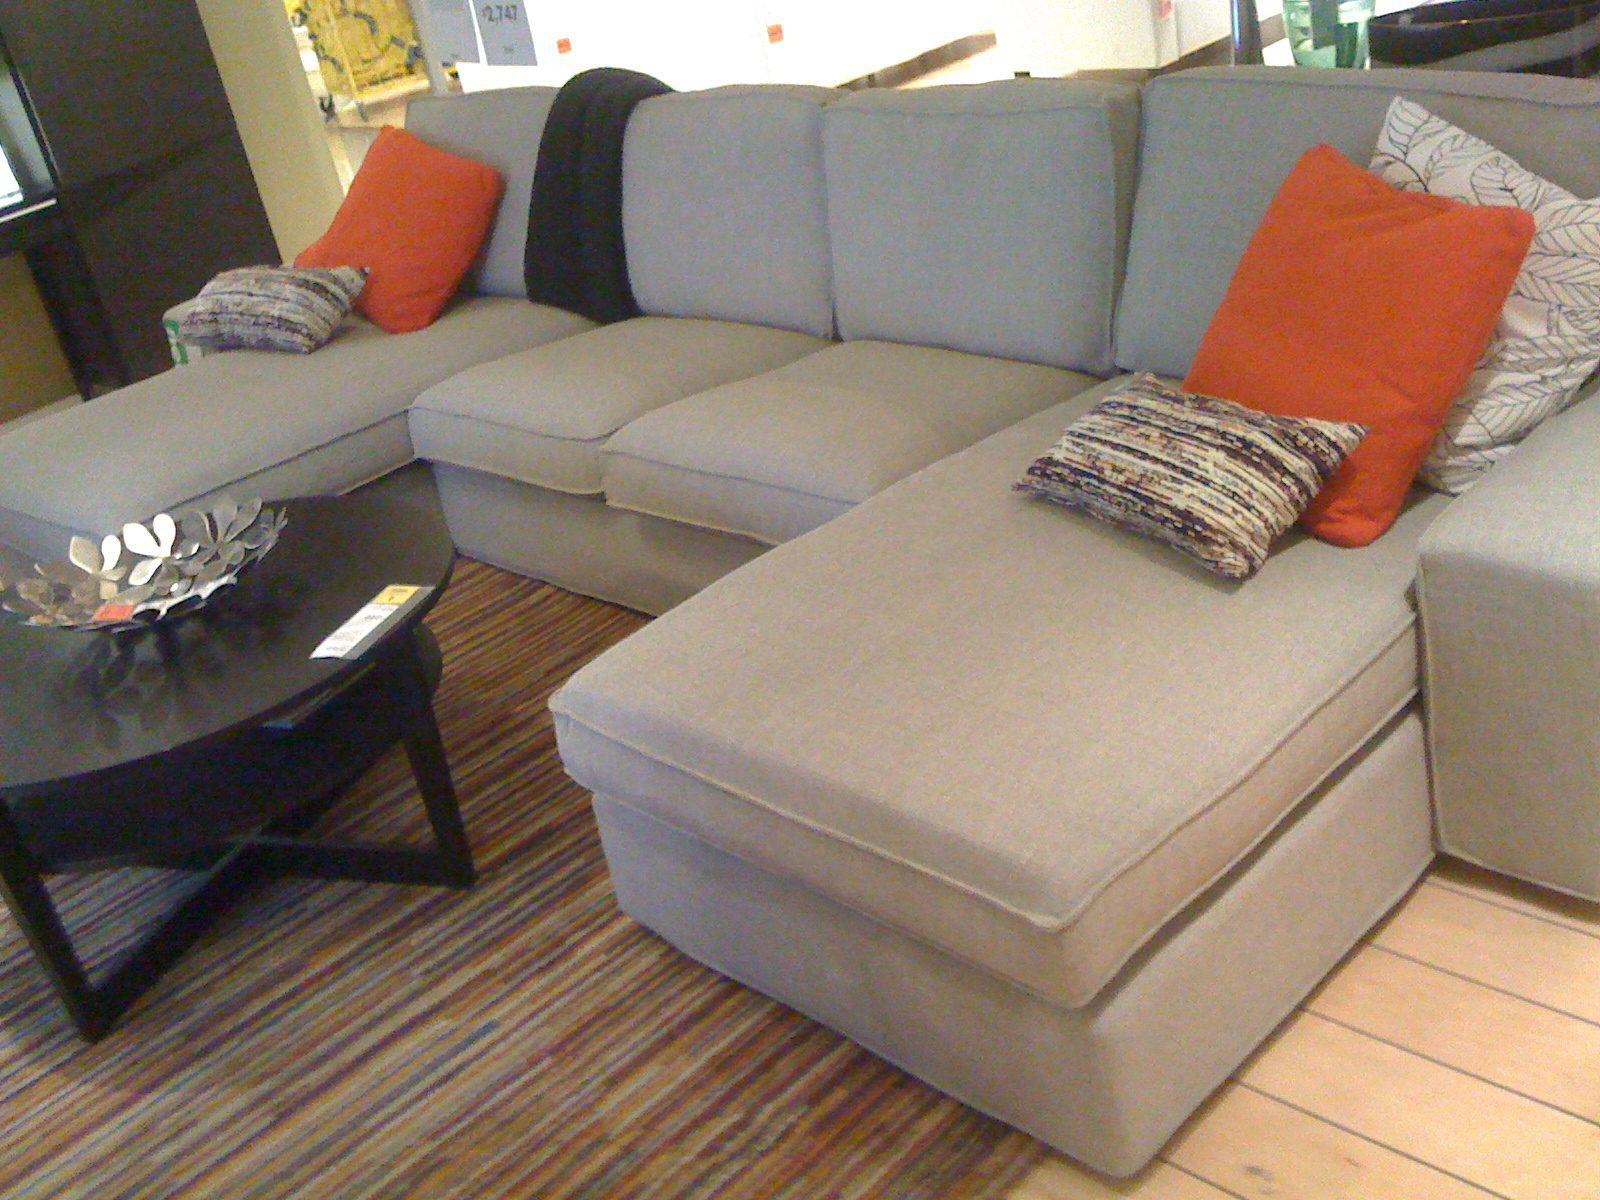 Ikea Kivik Sofa Ikea Presents New Kivik Sofa Range Comfort Works Blog Design